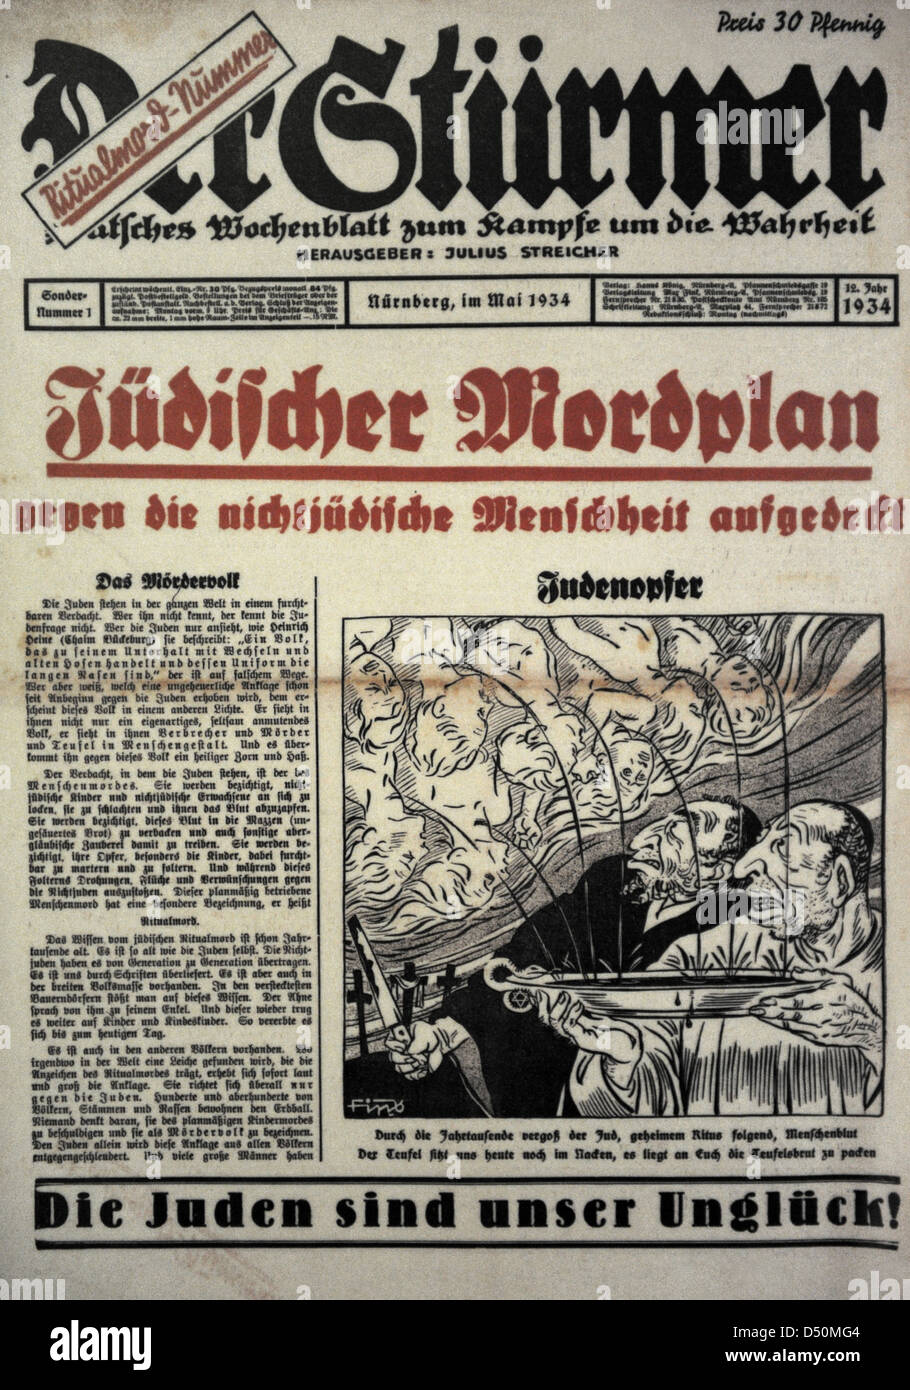 Der Sturmer. Weekly paper edited by the NSDAP Julius Streicher in Nuremberg. Front page. Special issue 1. May, 1934. - Stock Image